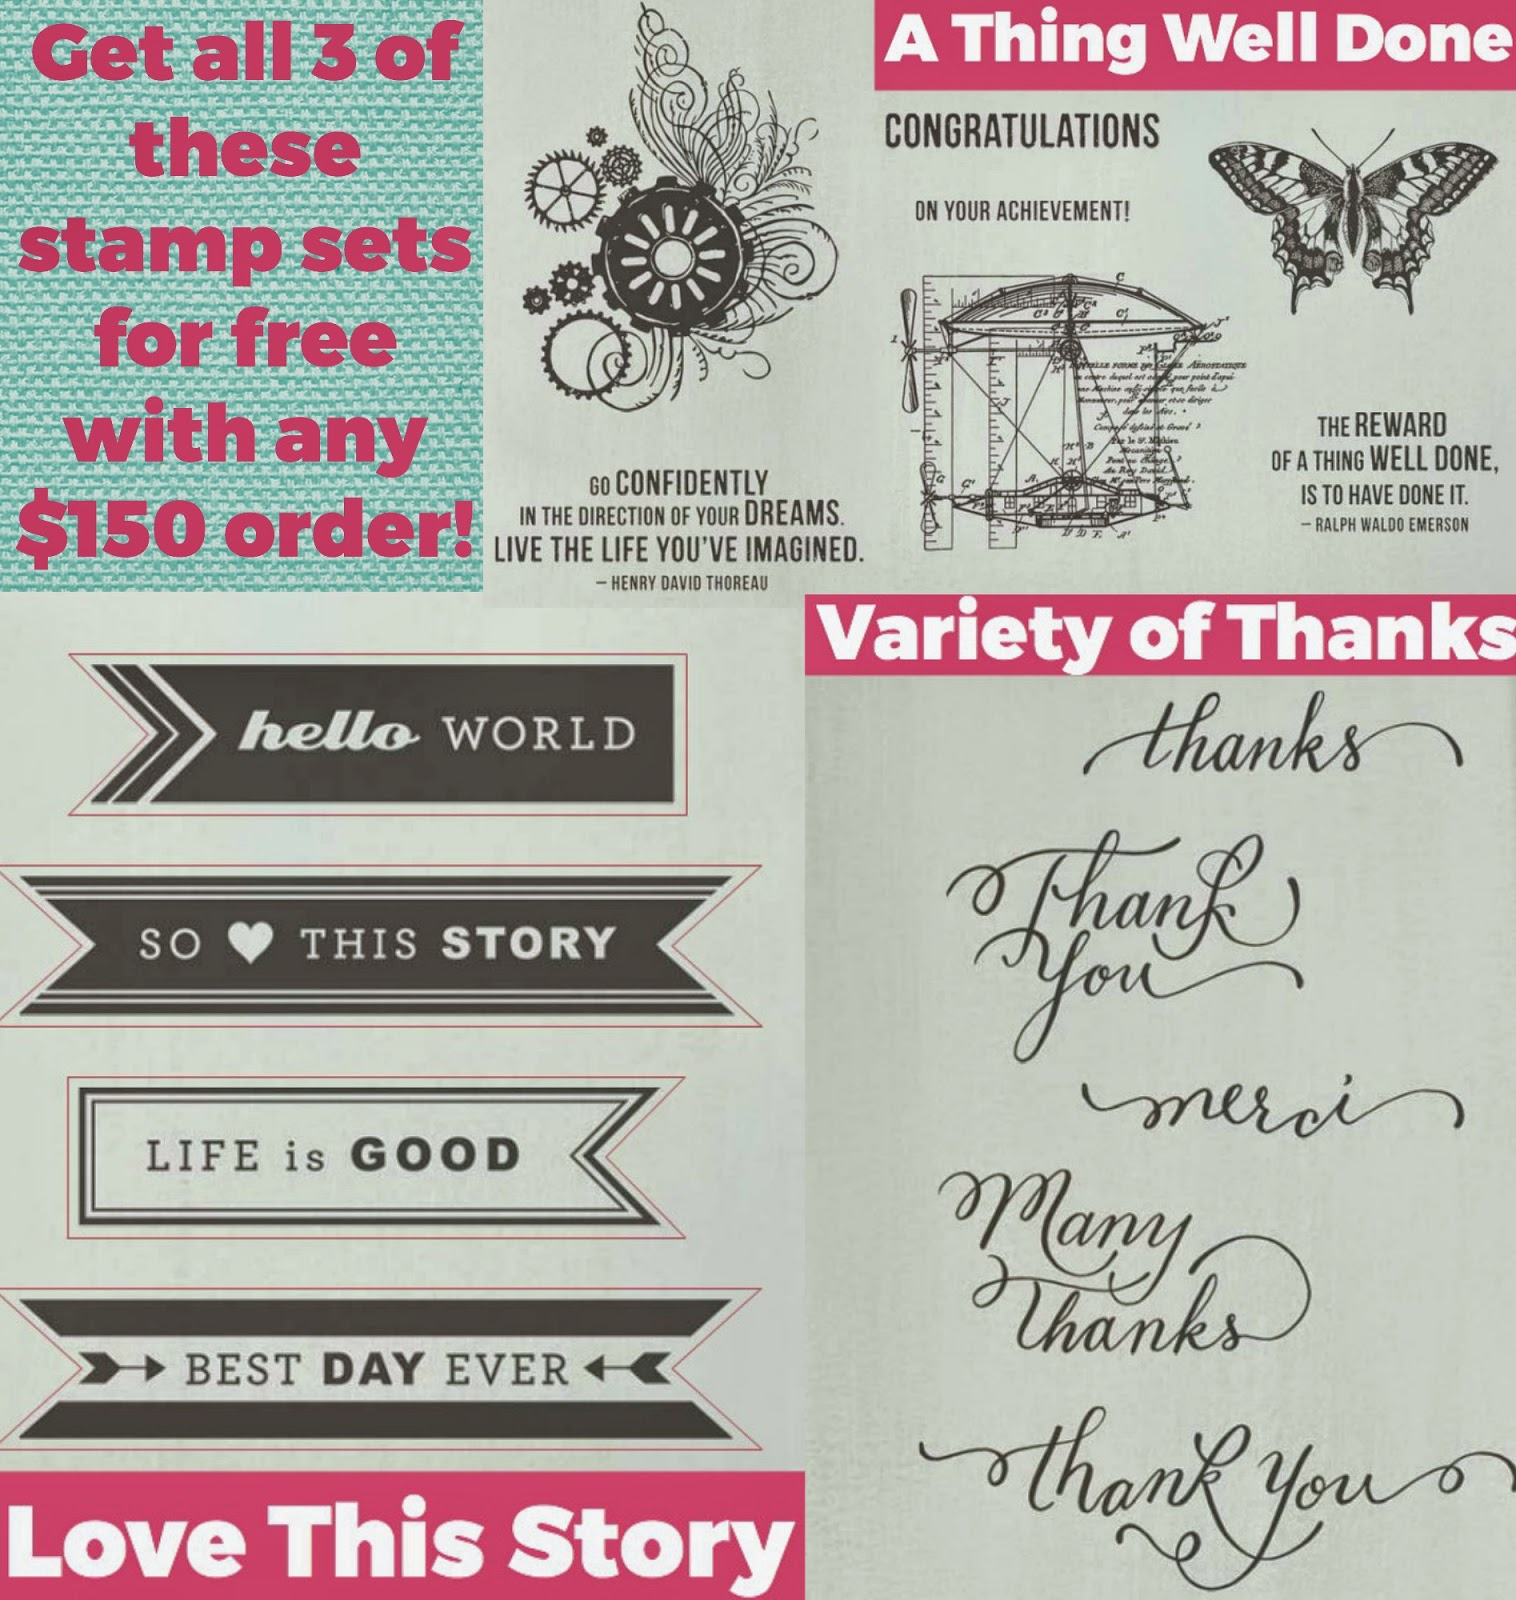 Free stamps!